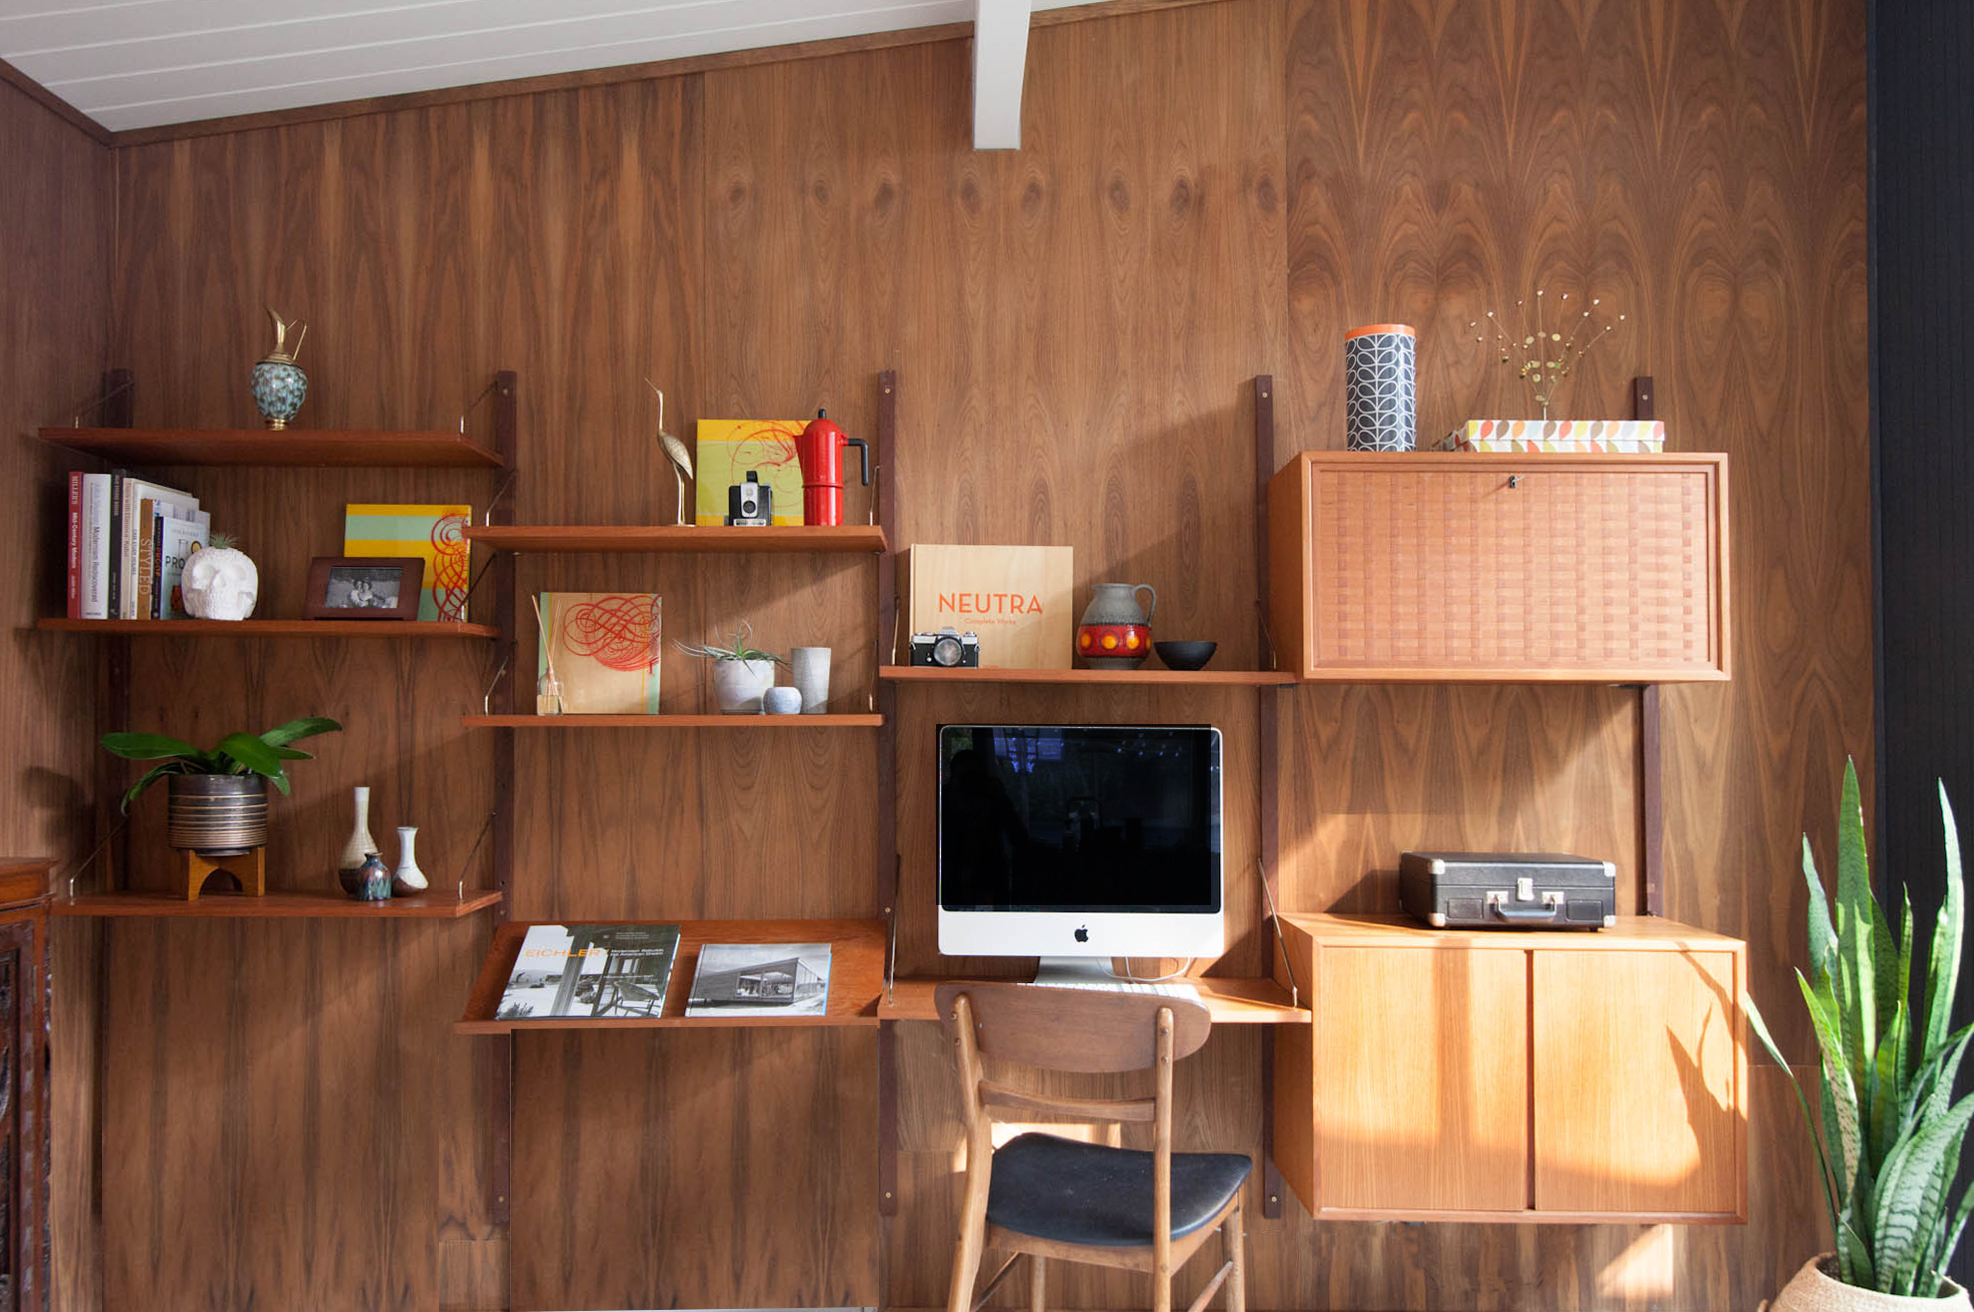 Danish-Wall-Unit-Shelving-System-Eichler.jpg